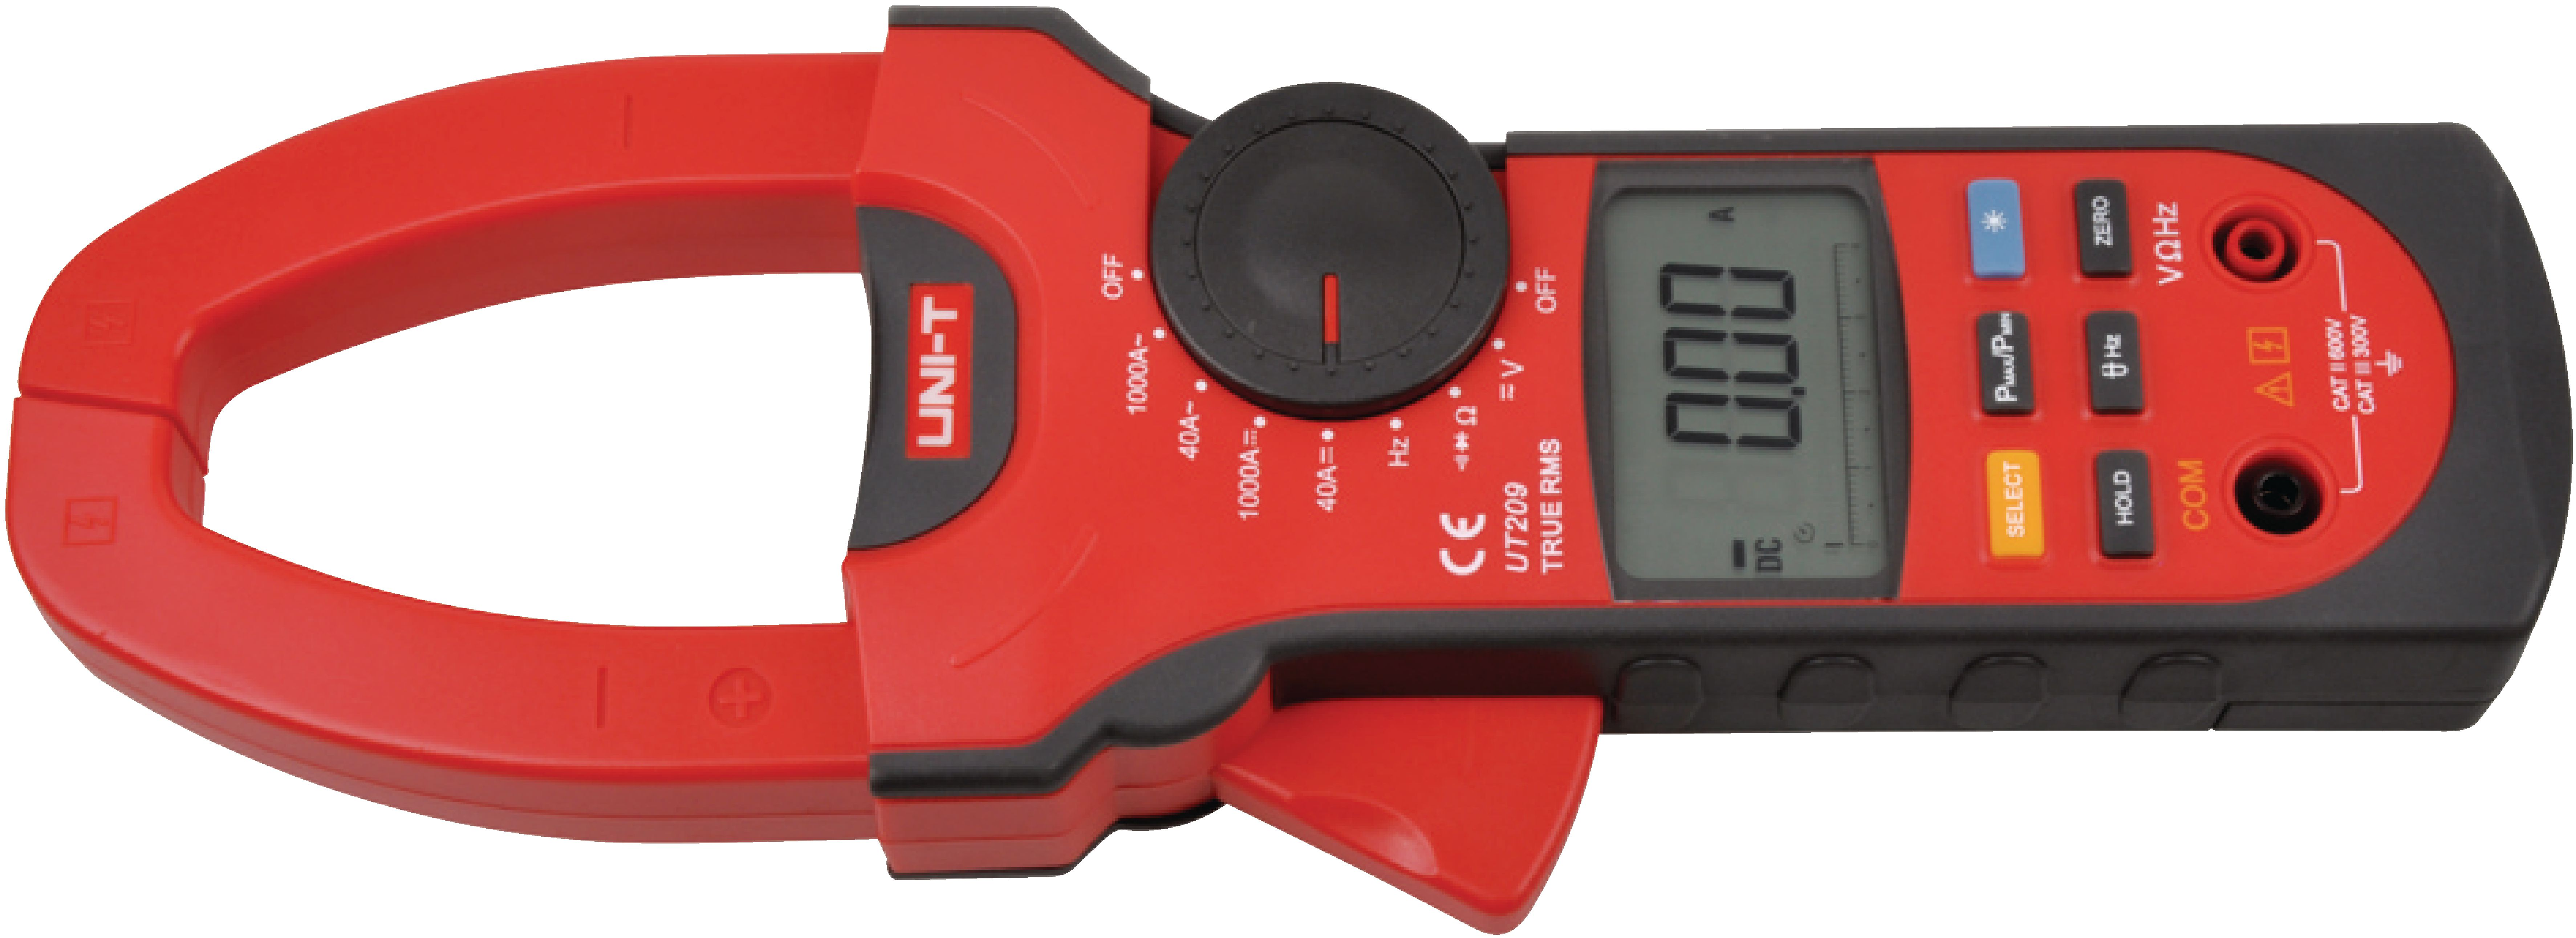 CURRENT CLAMP METER, 1000 AAC, 1000 ADC, TRMS